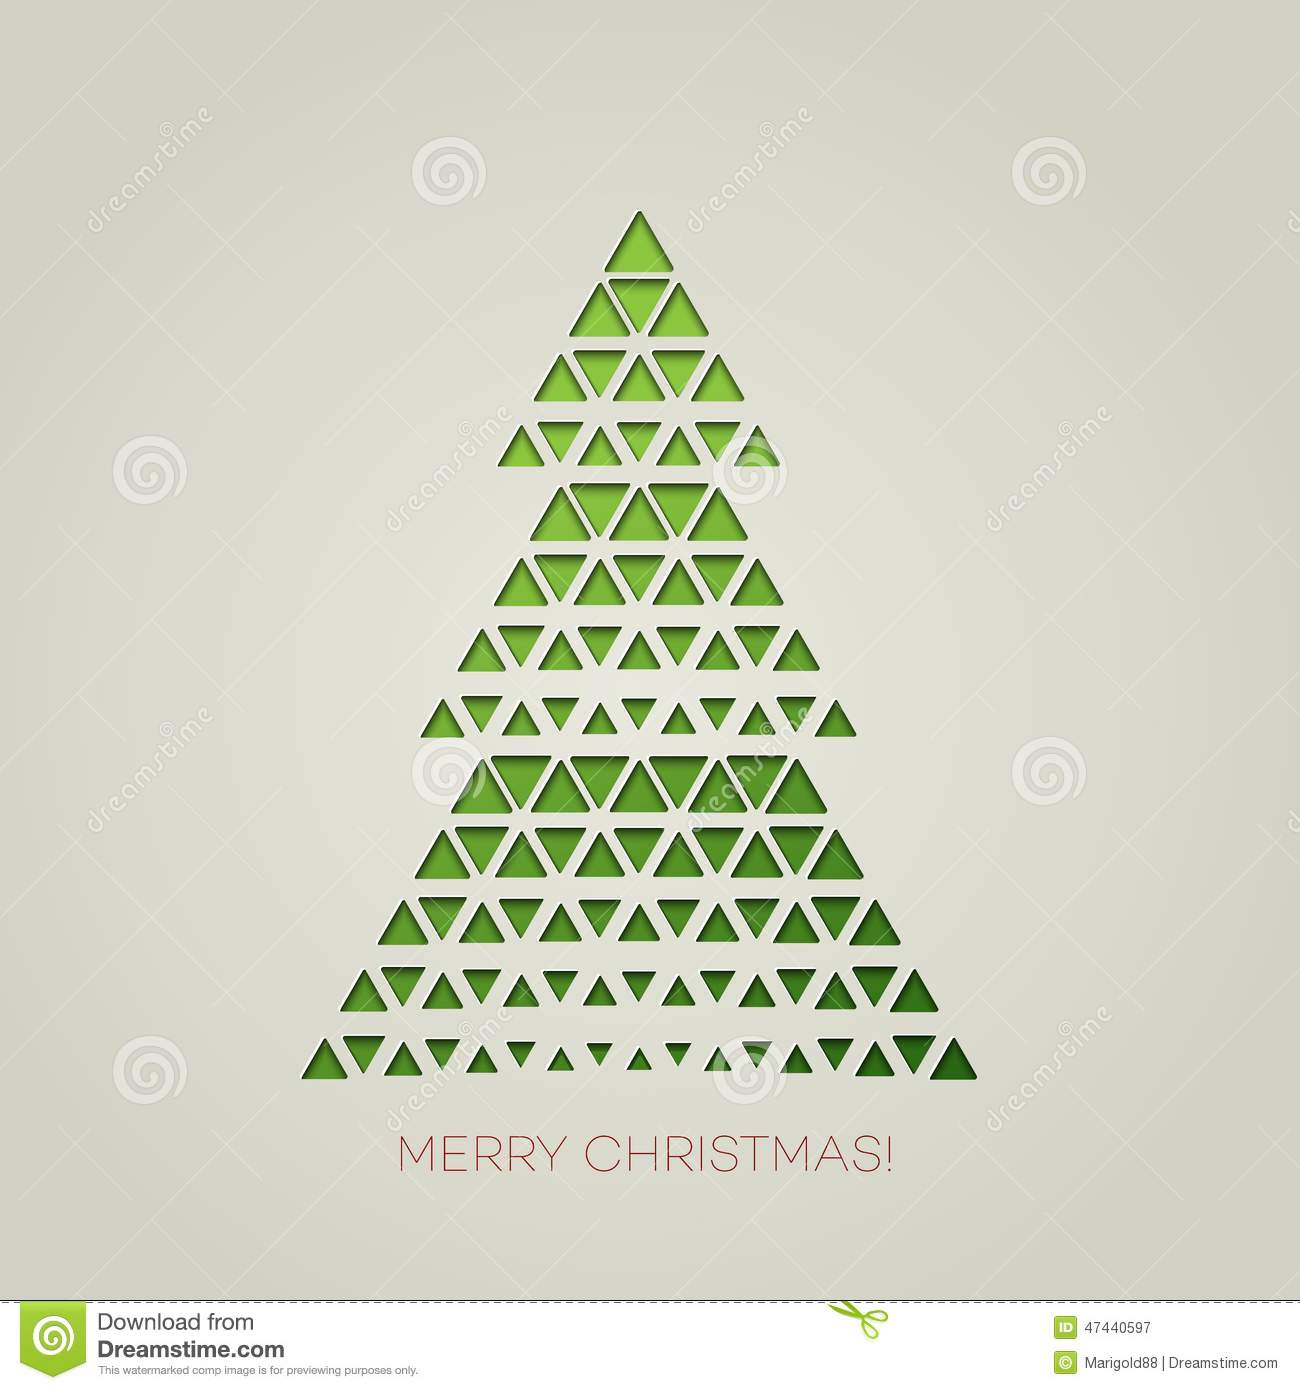 Merry Christmas Tree With Triangle Shape Stock Vector - Image ...